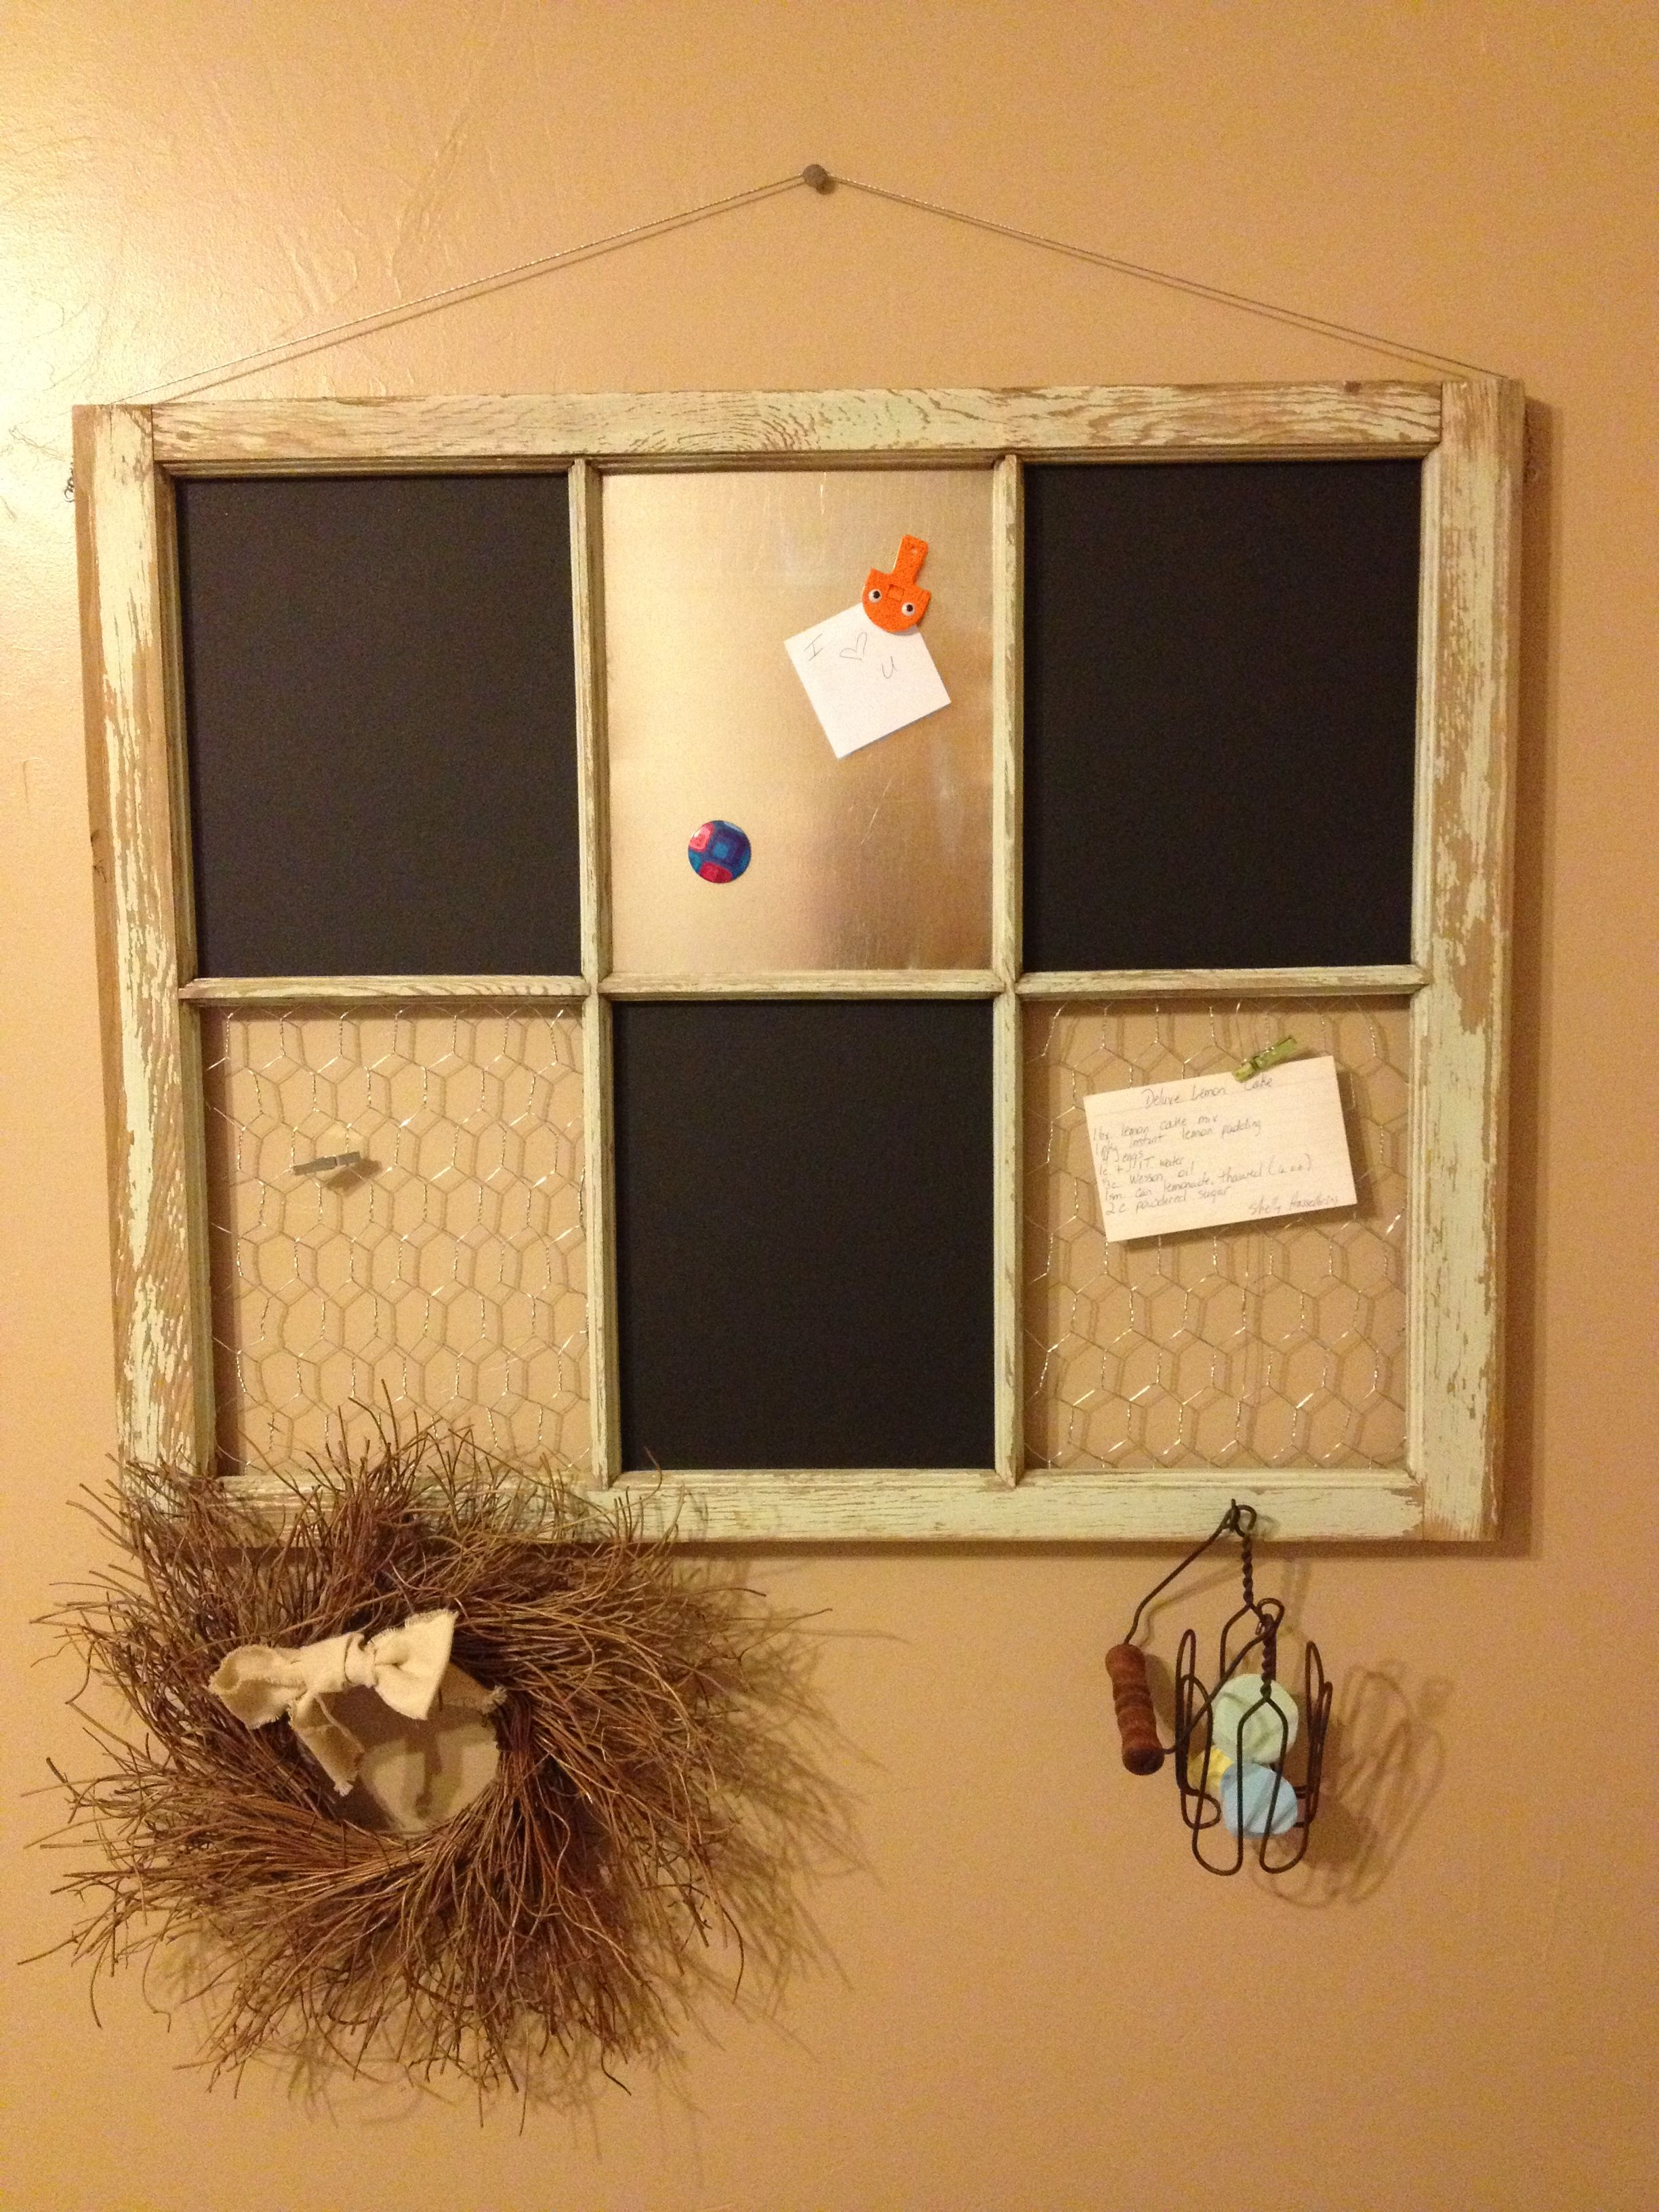 My newest project! A 6-paned antique window, with chalk board, magnet board, and chicken wire. I left the original chipped mint green paint for character.